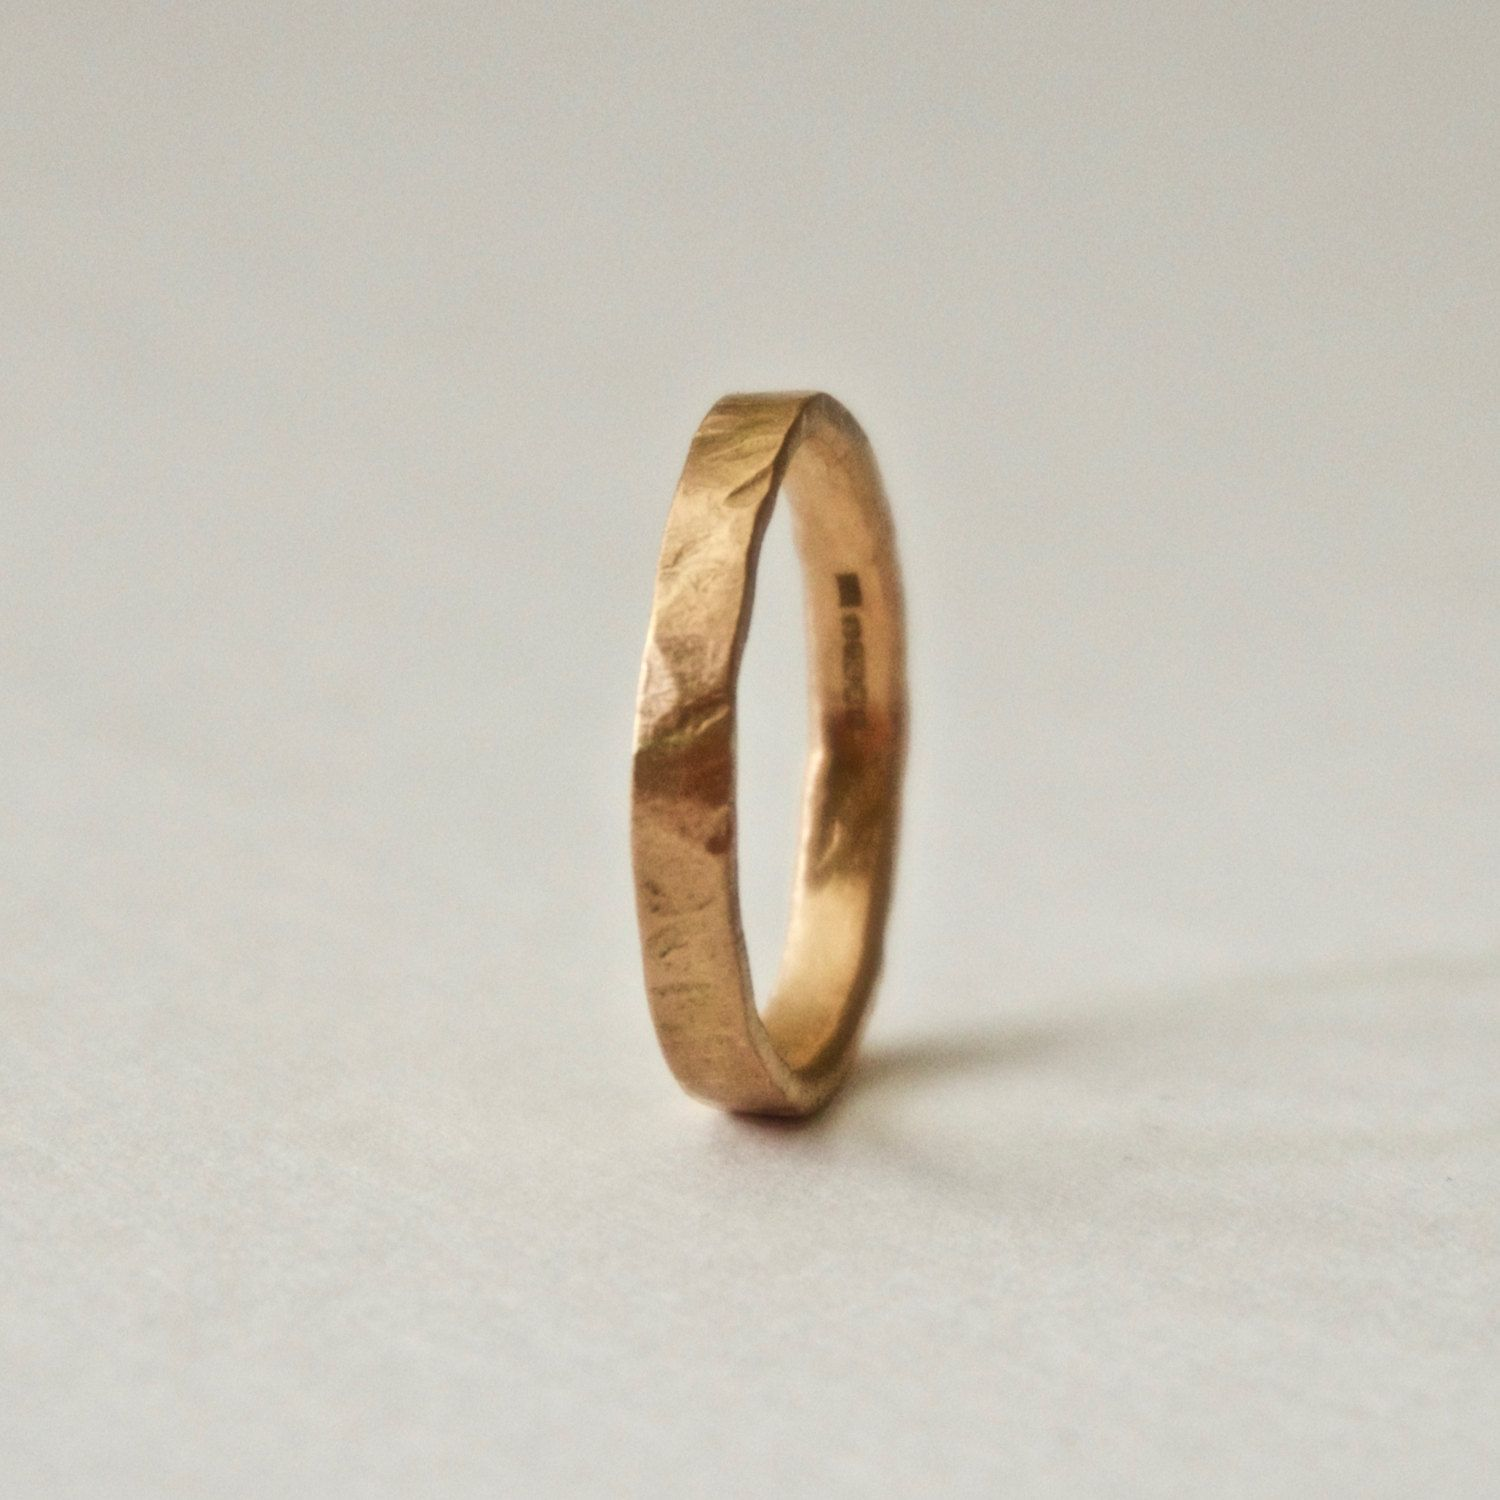 Rose Gold Hammered Ring 18 Carat Flat Hammer Textured Unique